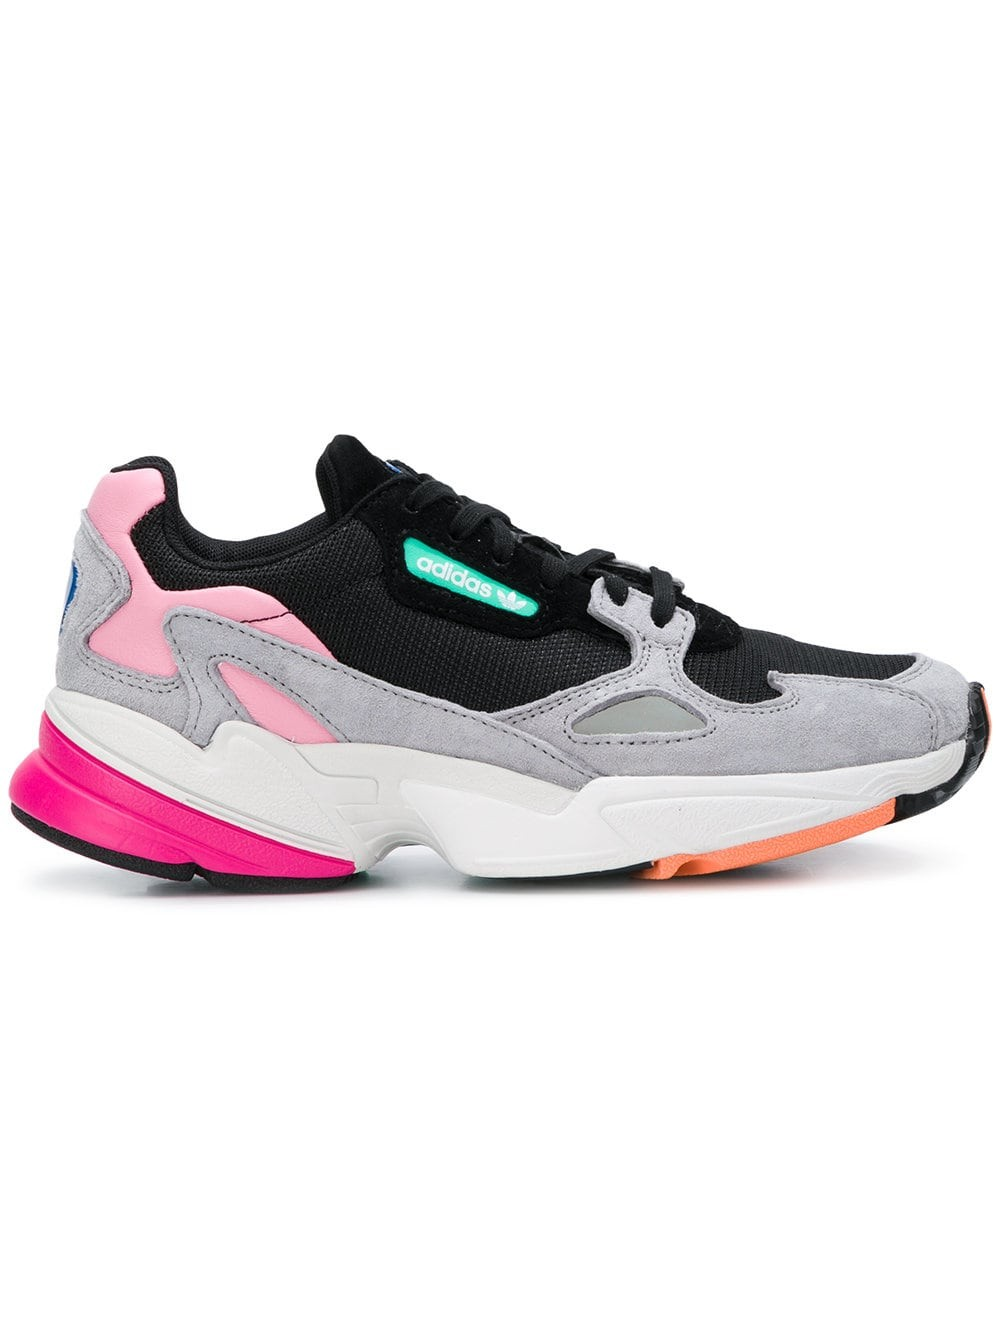 Adidas Originals Falcon Negras/Grises BB9173